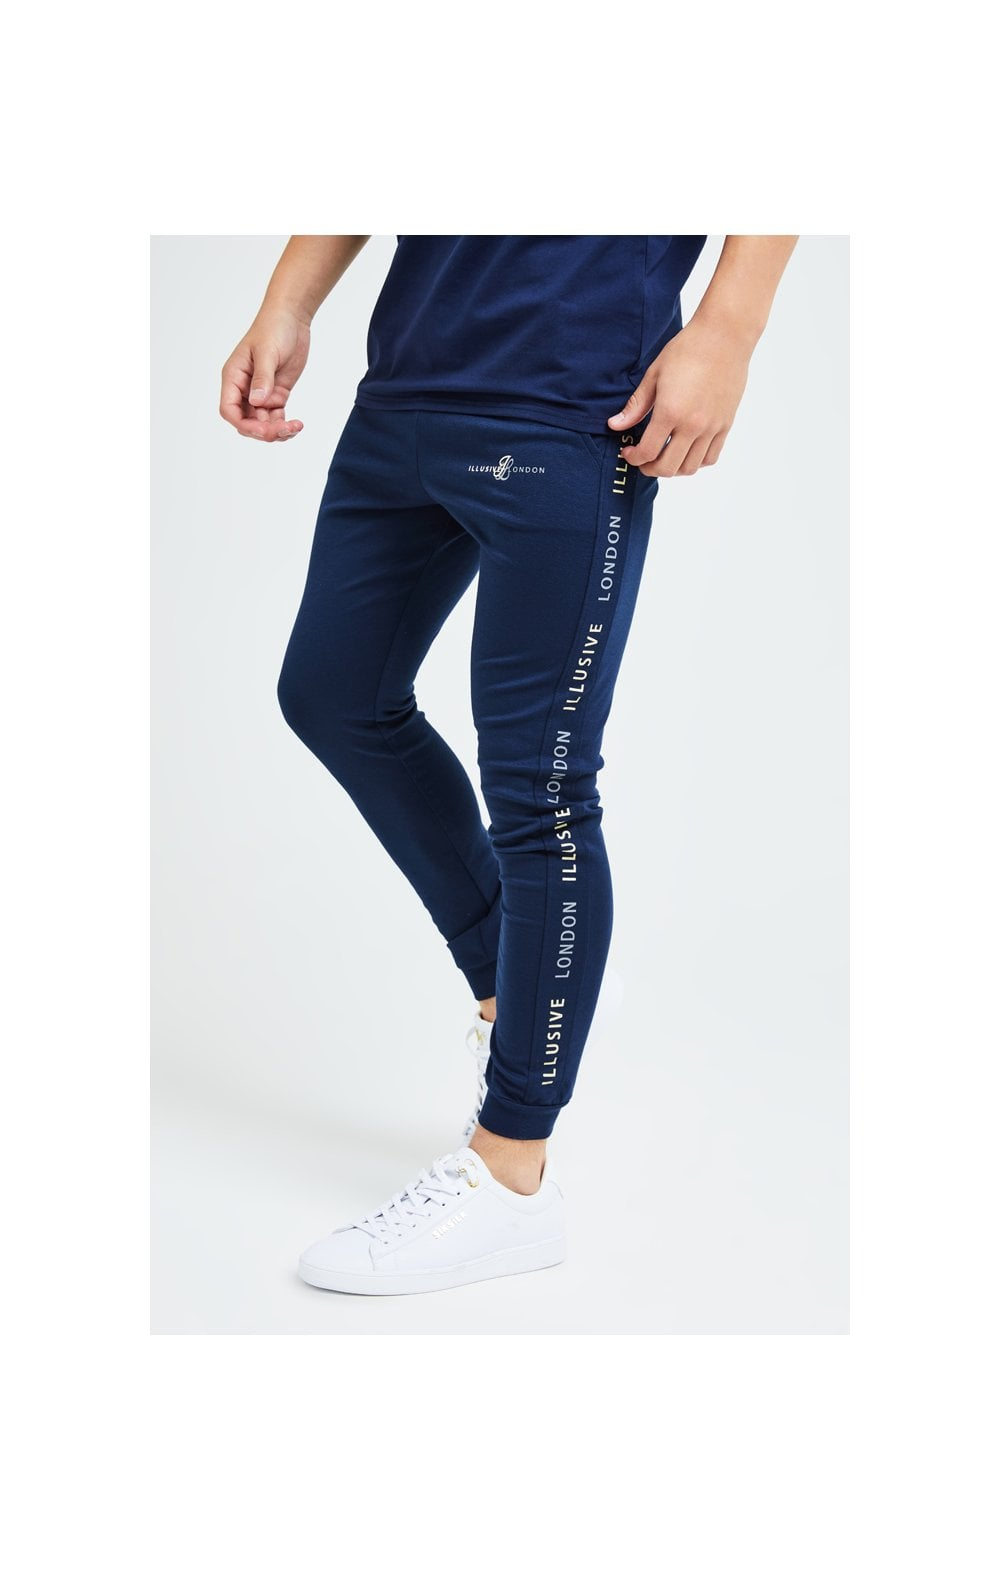 Illusive London Legacy Joggers - Navy & Cream